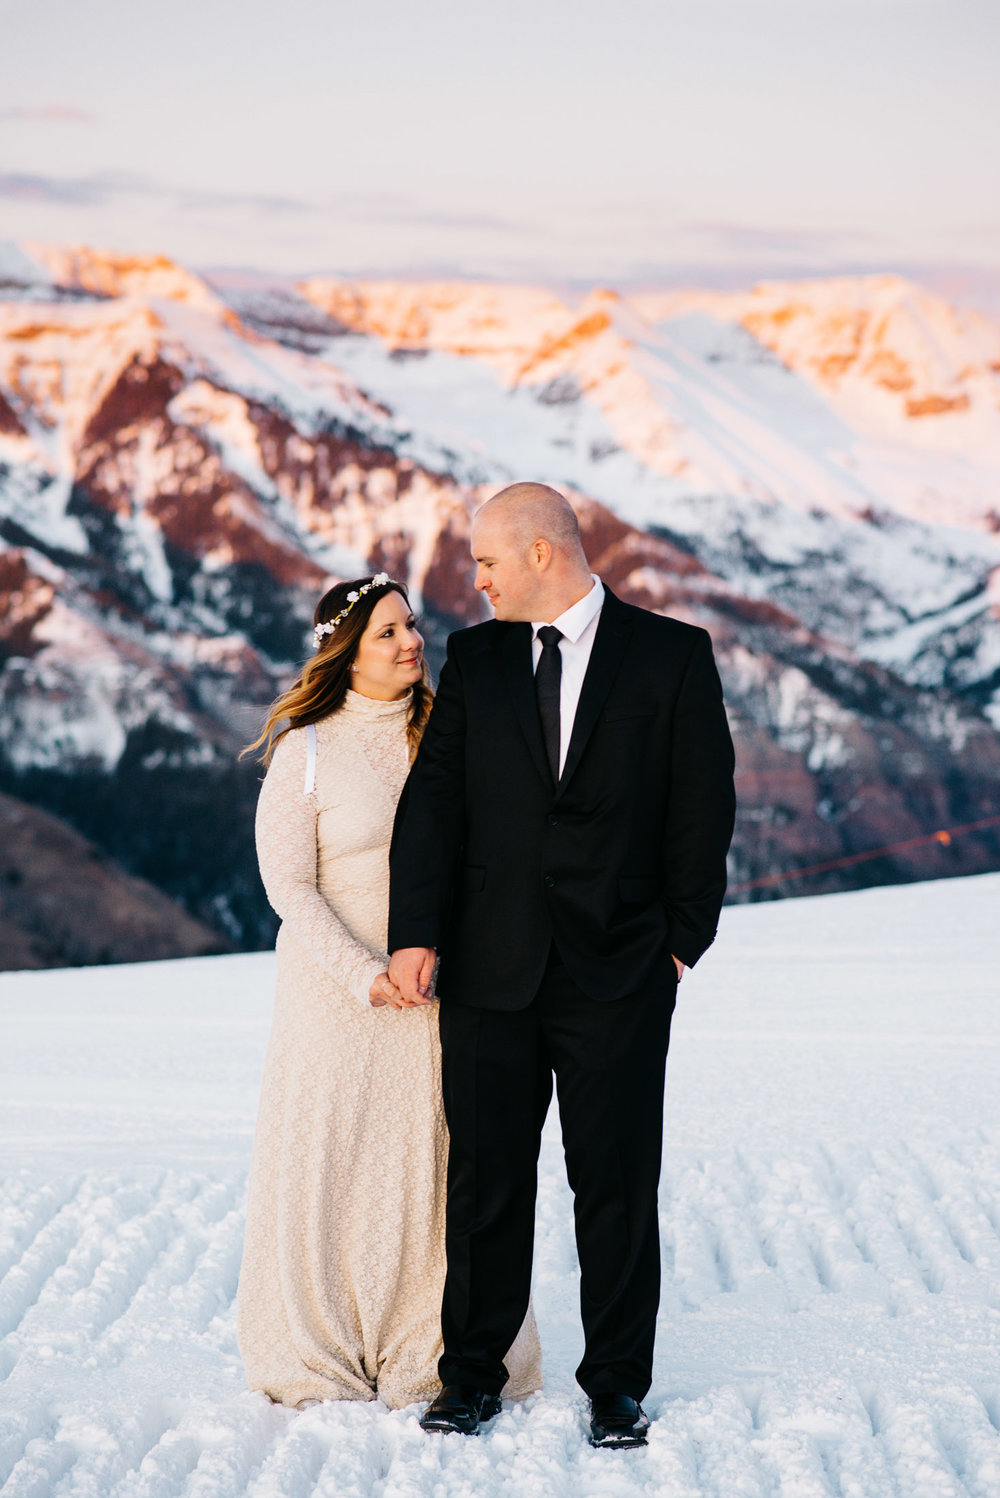 83elopement-photographer-colorado-telluride-winter-wedding-mountain-wedding-photographer-paige&chad-1035-2.jpg